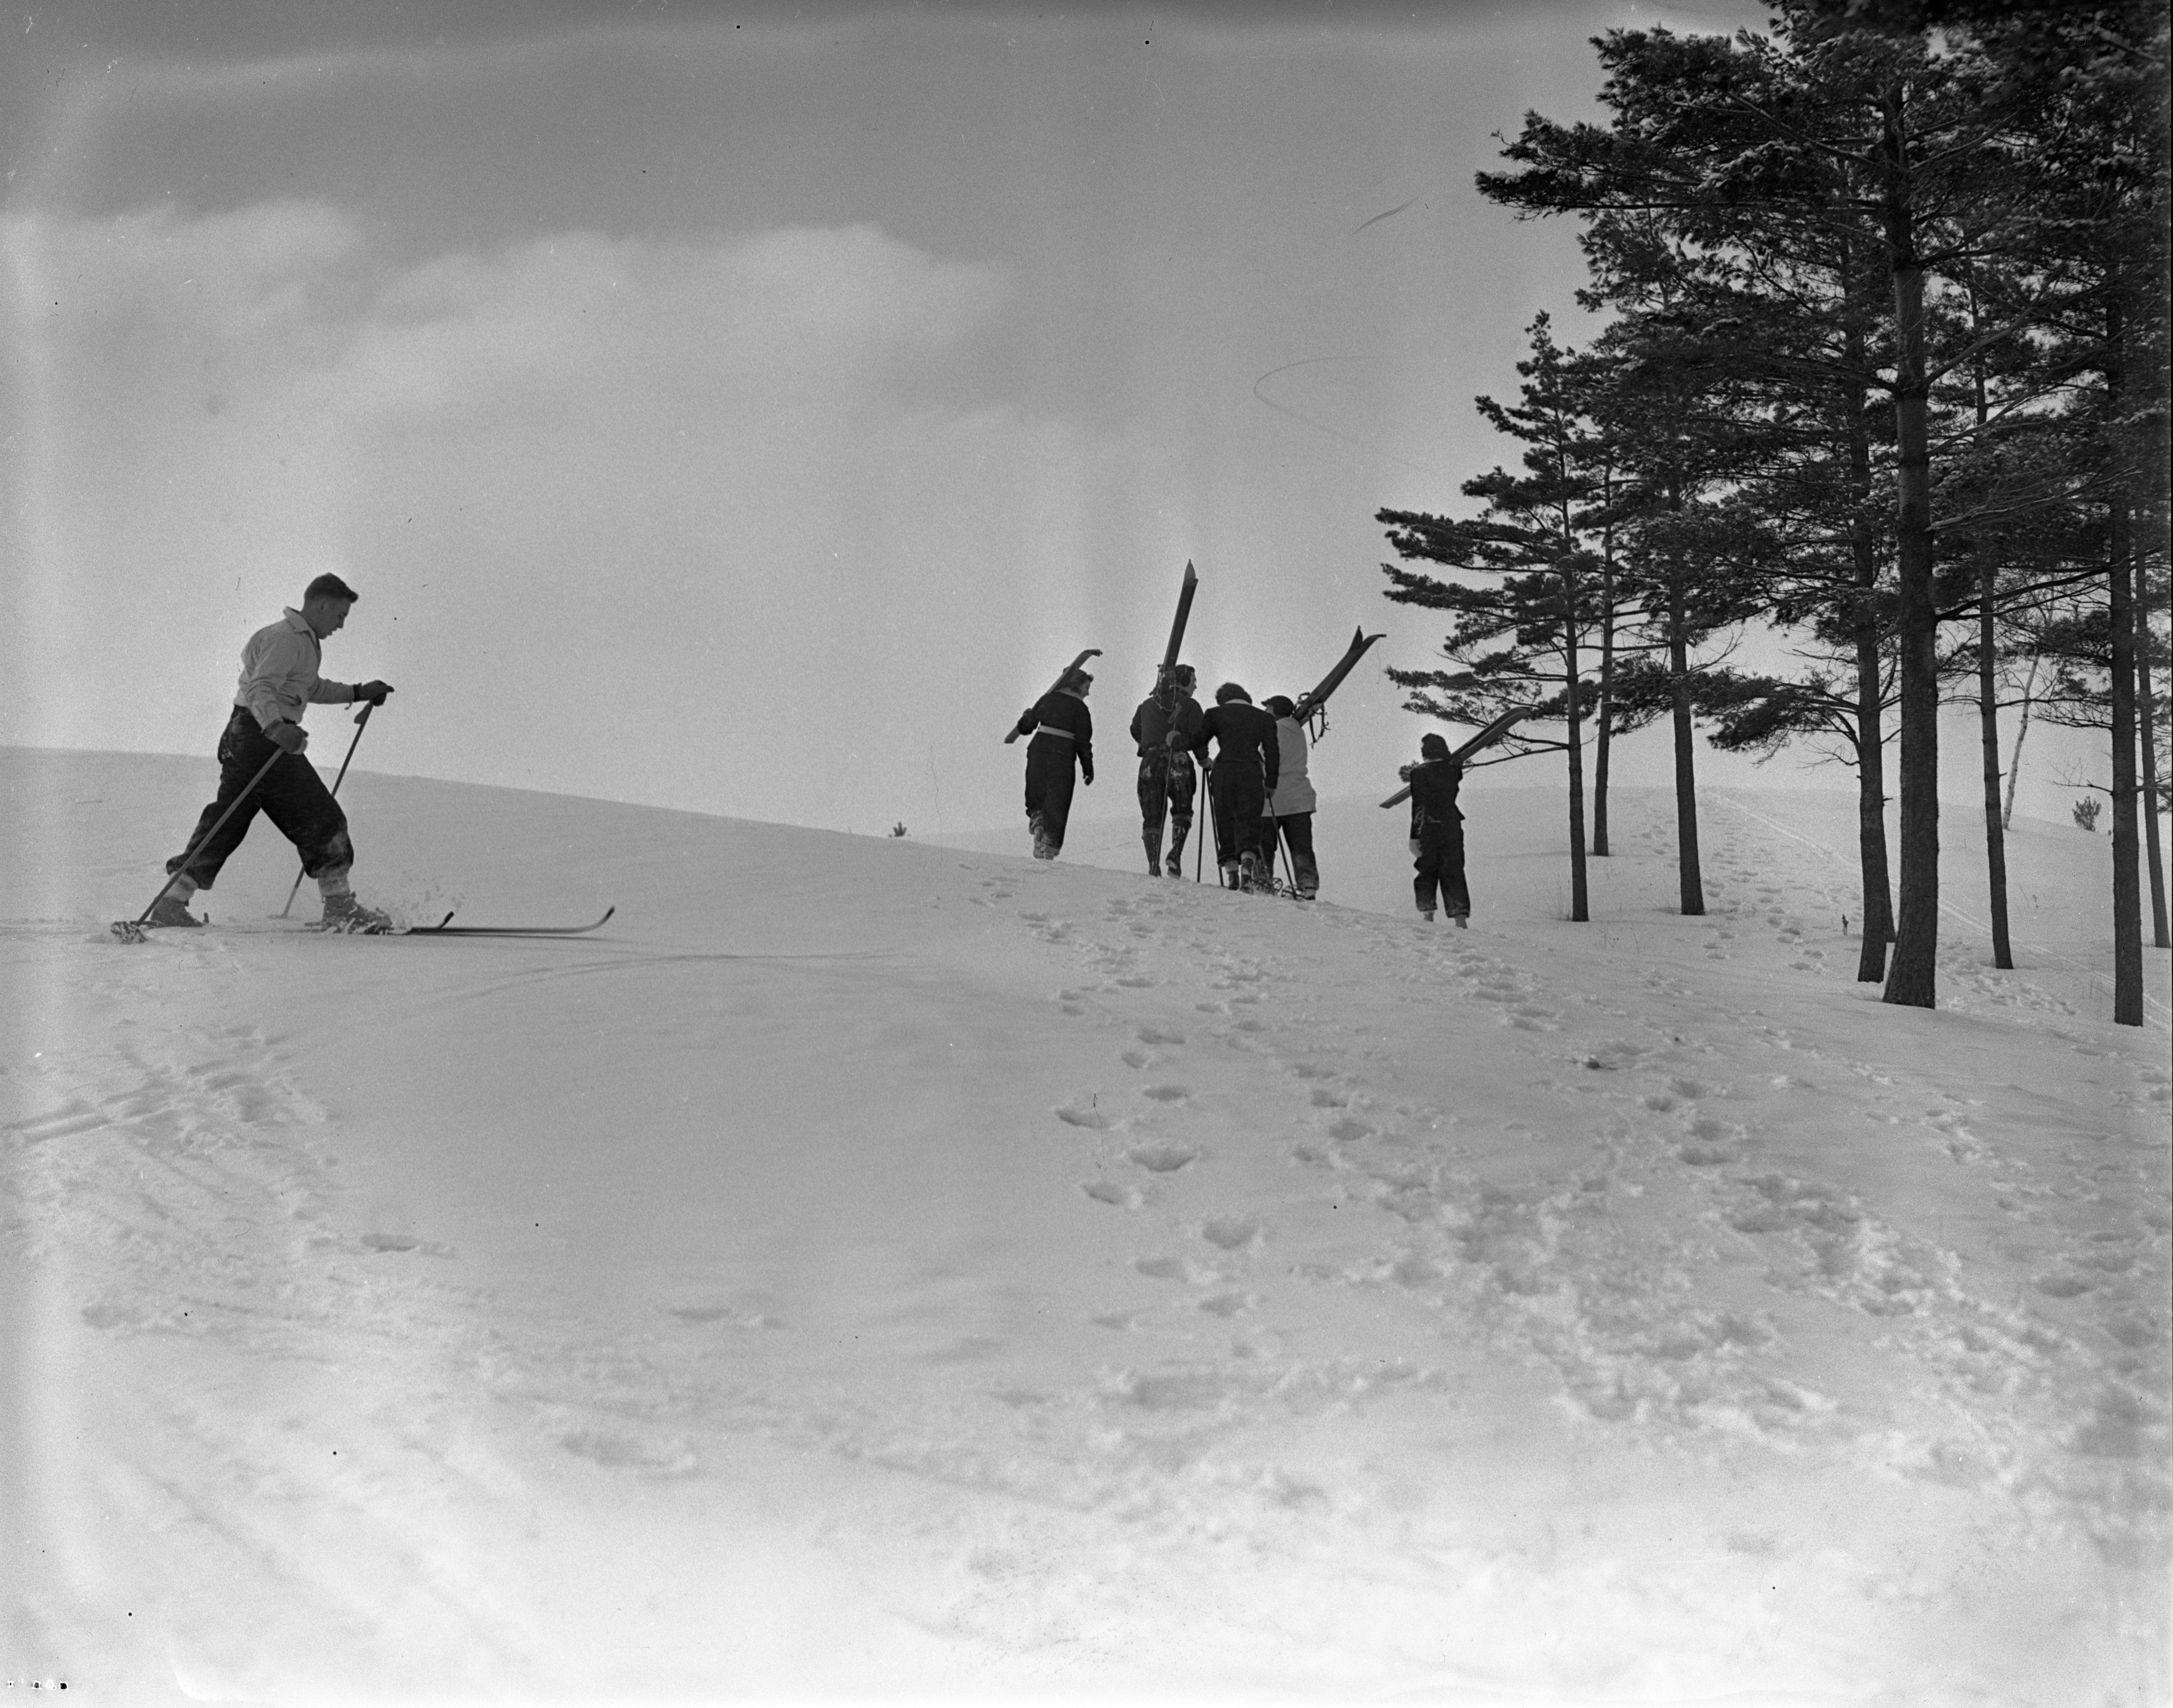 Group Walks Up A Hill With Skis Over Their Shoulders In Traverse City, January 1940 image